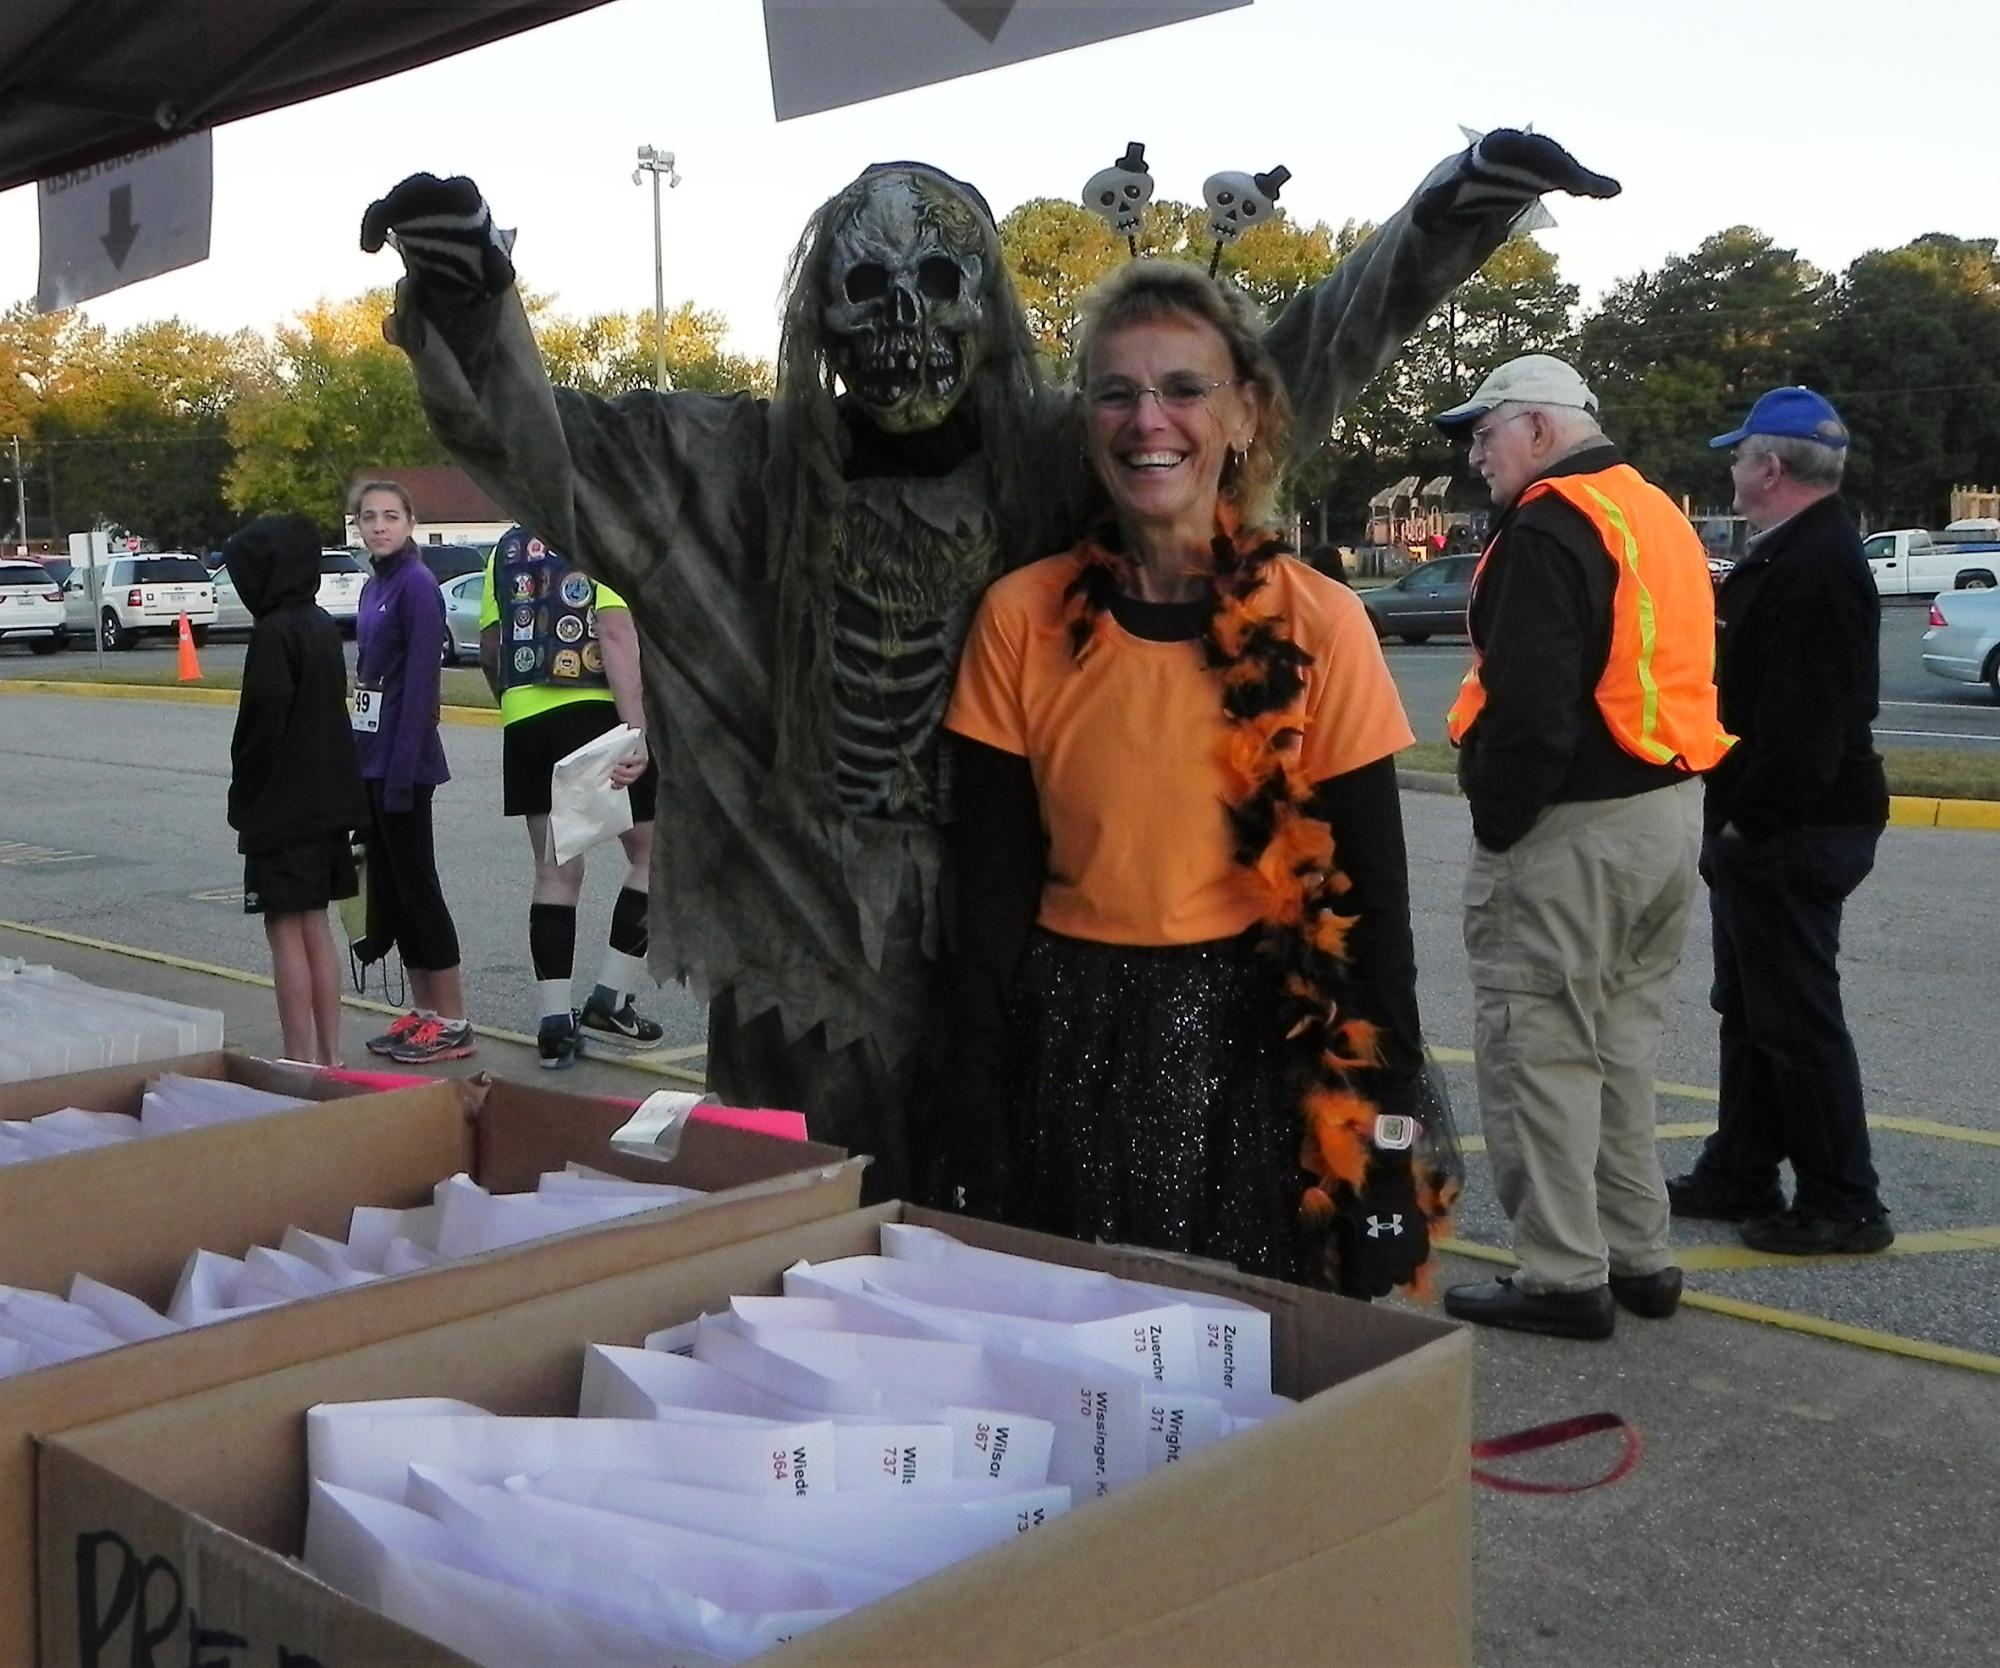 Runners_dressed_in_costume_at_registration_table.jpg